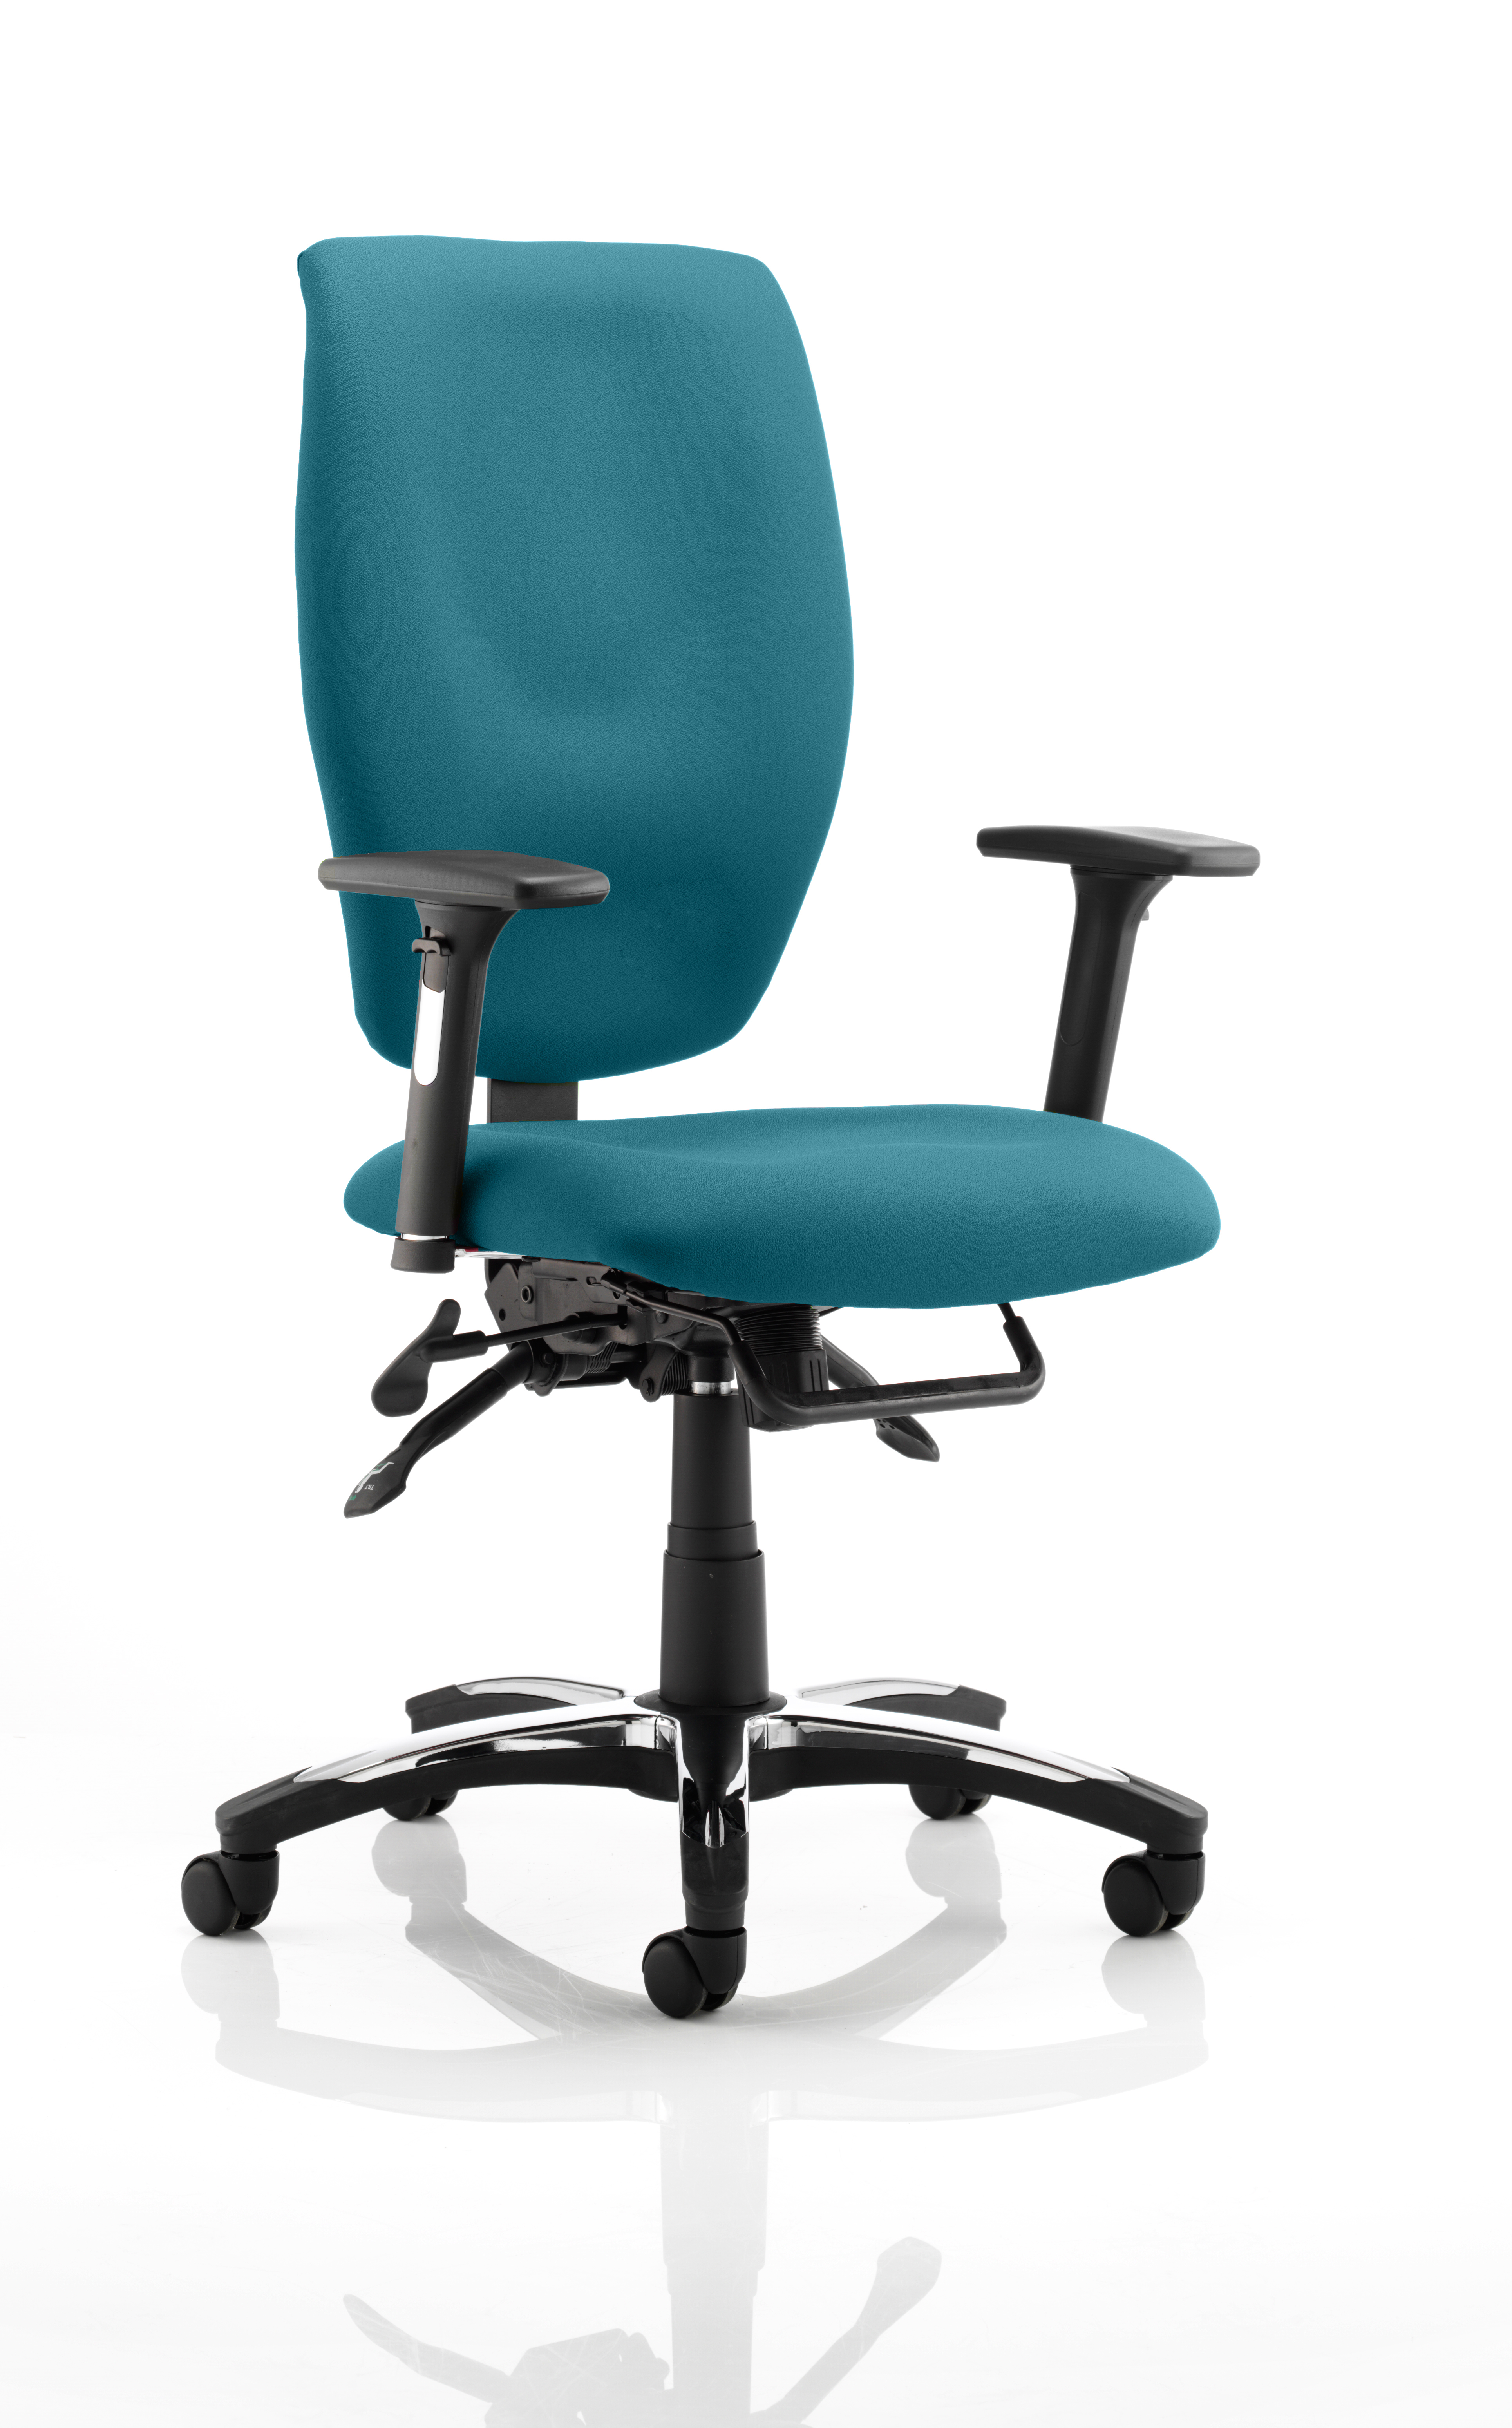 Sierra Executive Chair Black Fabric With Arms In Maringa Teal